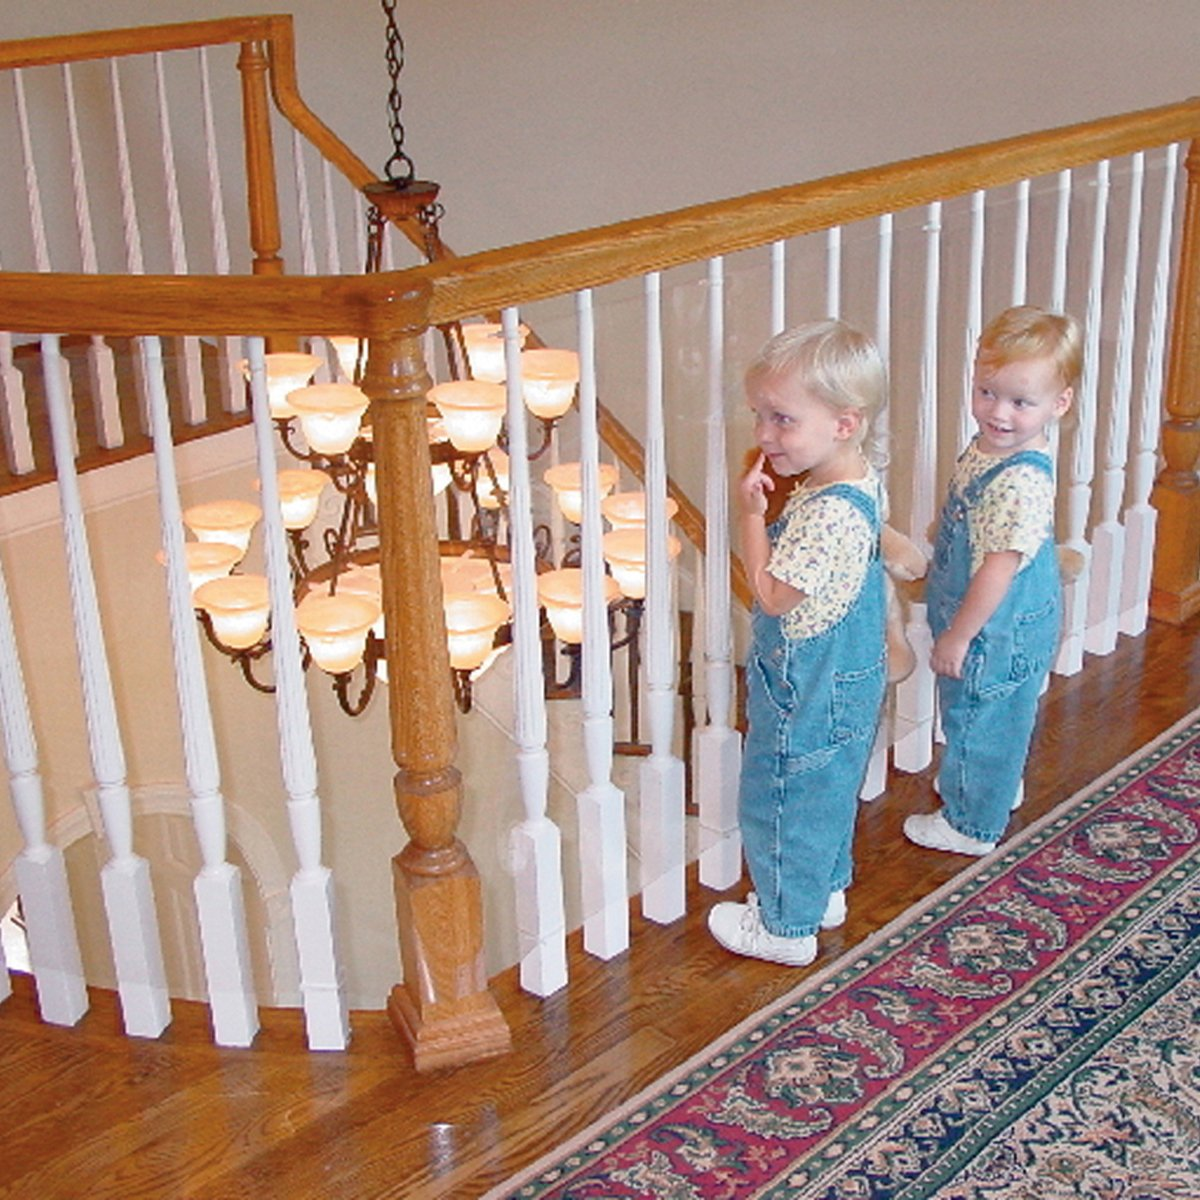 Amazon.com : Kidkusion Kid Safe Banister Guard : Childrens Home Safety  Products : Baby